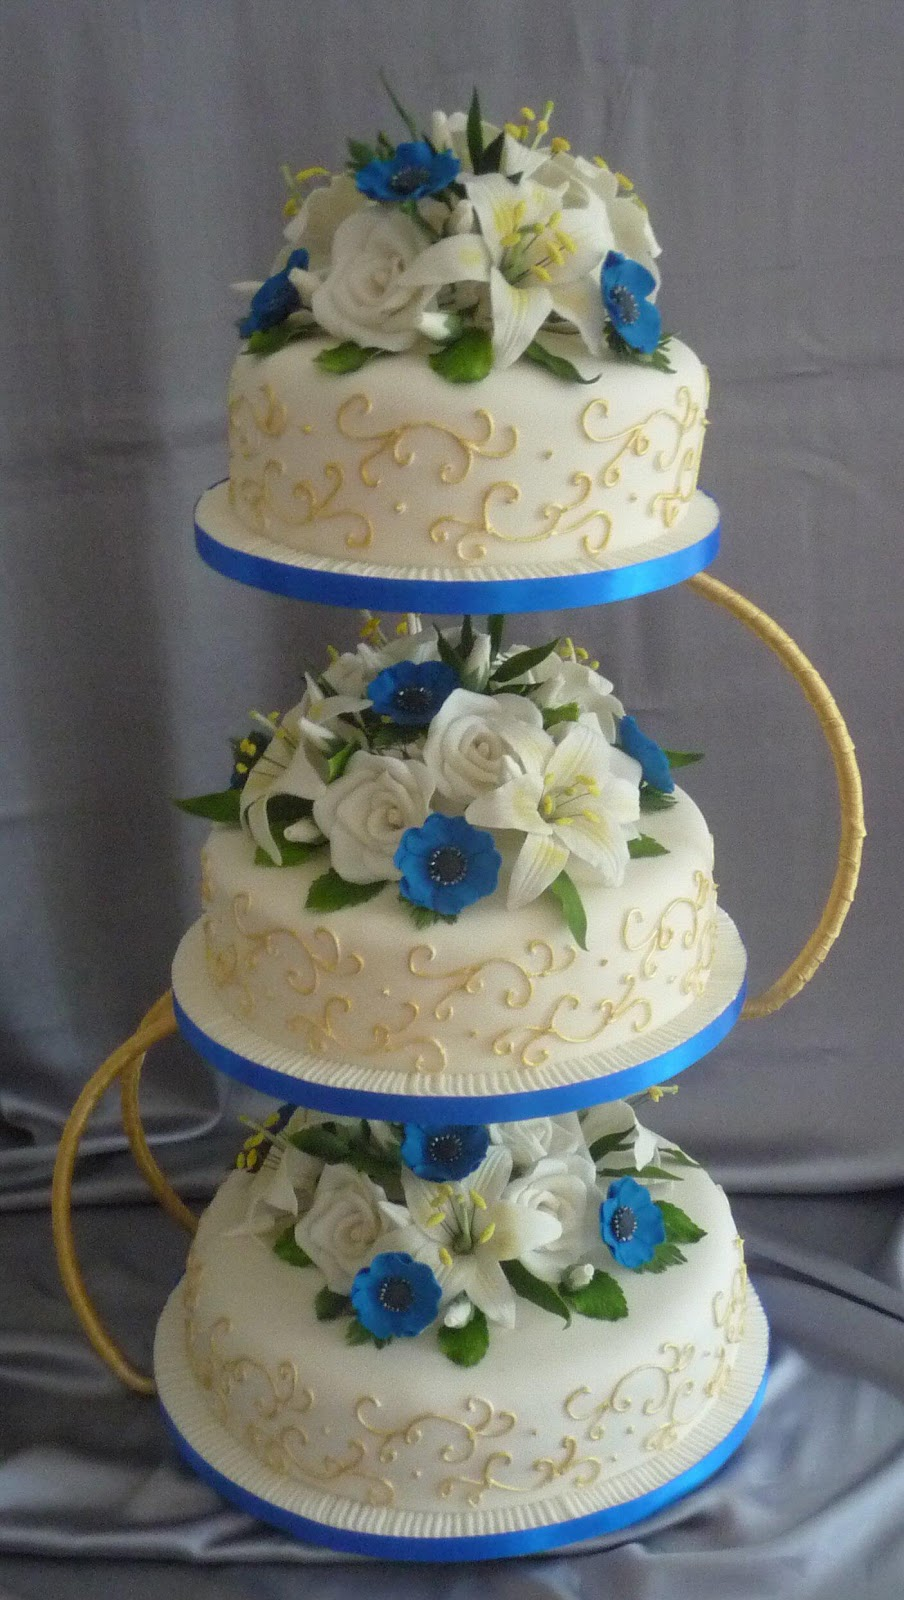 wedding cake designs royal blue and gold wedding cakes by franziska blue and gold wedding cake design 22496